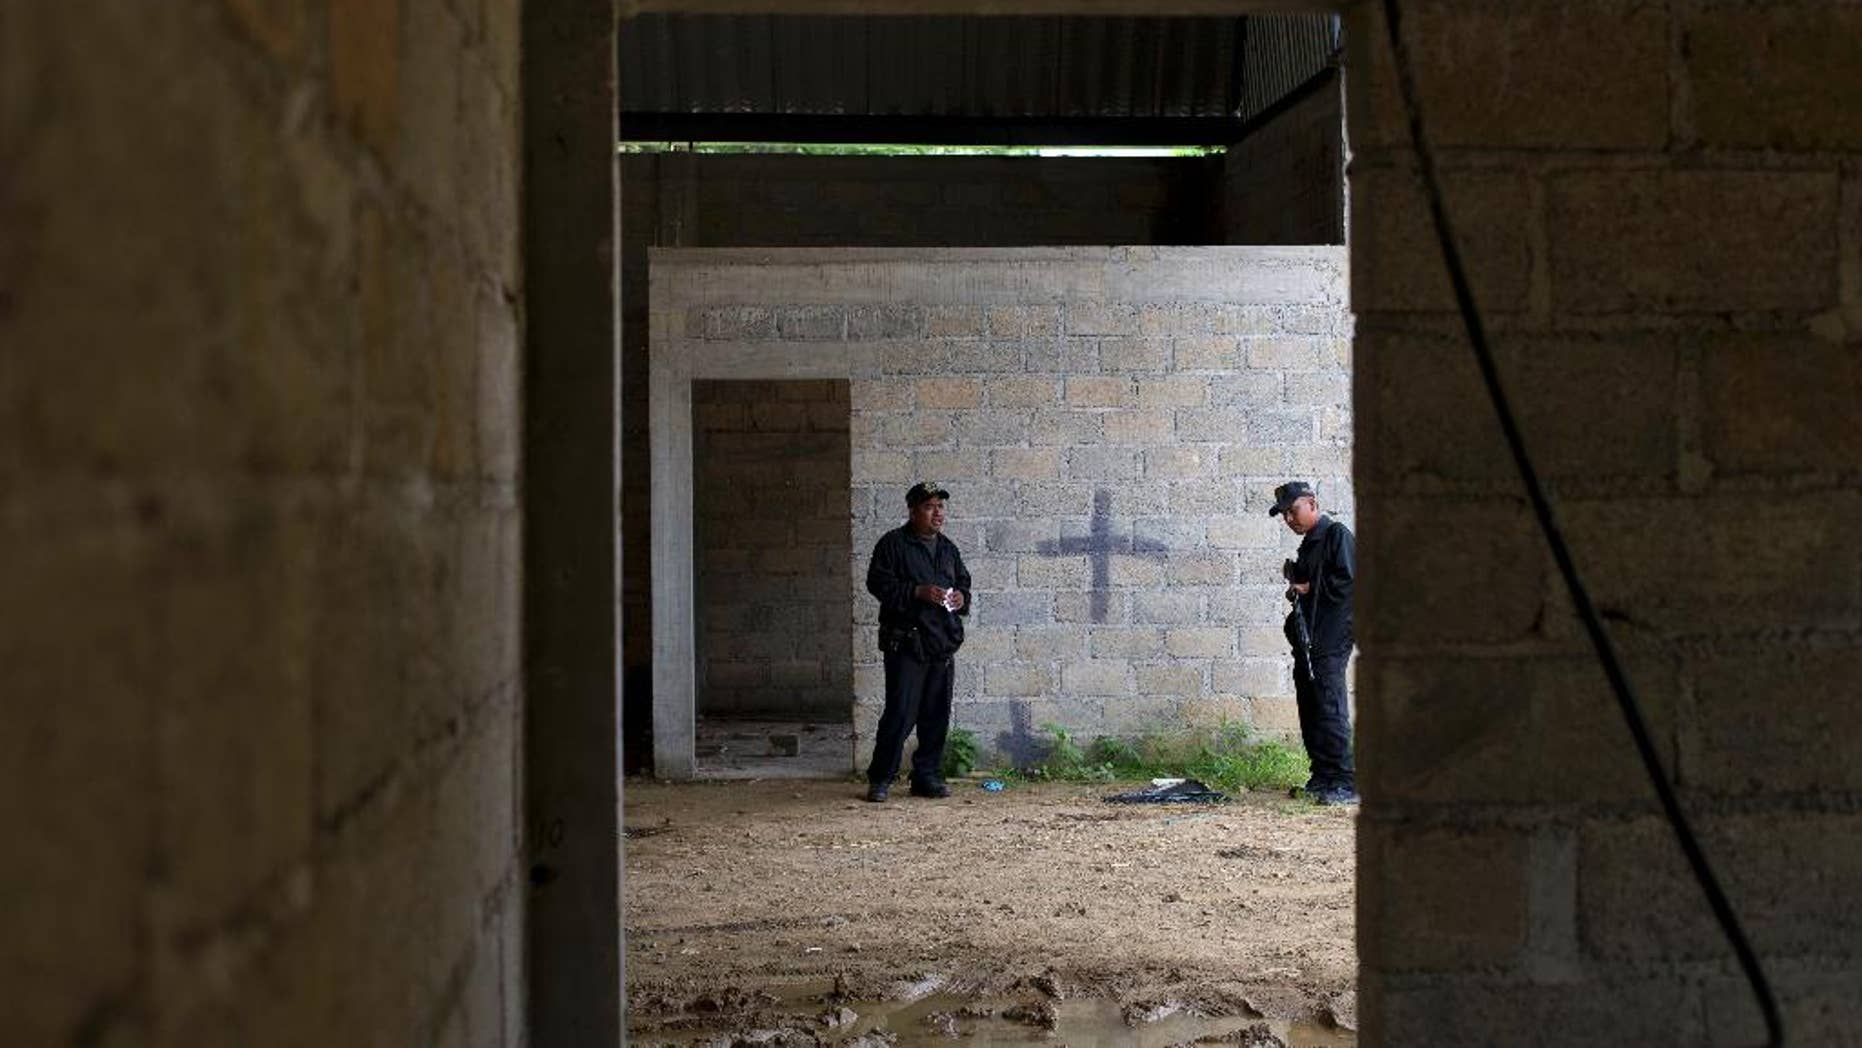 FILE - In this Thursday, July 3, 2014, file photo, state police stand inside a warehouse where a black cross covers a wall near blood stains on the ground, after a shootout between Mexican soldiers and alleged criminals on the outskirts of the village of San Pedro Limon, in Mexico state, Mexico. Mexico's Defense Department said Thursday Sept. 25  2014, that an army officer and seven soldiers have been detained in connection with the killing of 22 people in the rural town in southern Mexico. (AP Photo/Rebecca Blackwell, File)